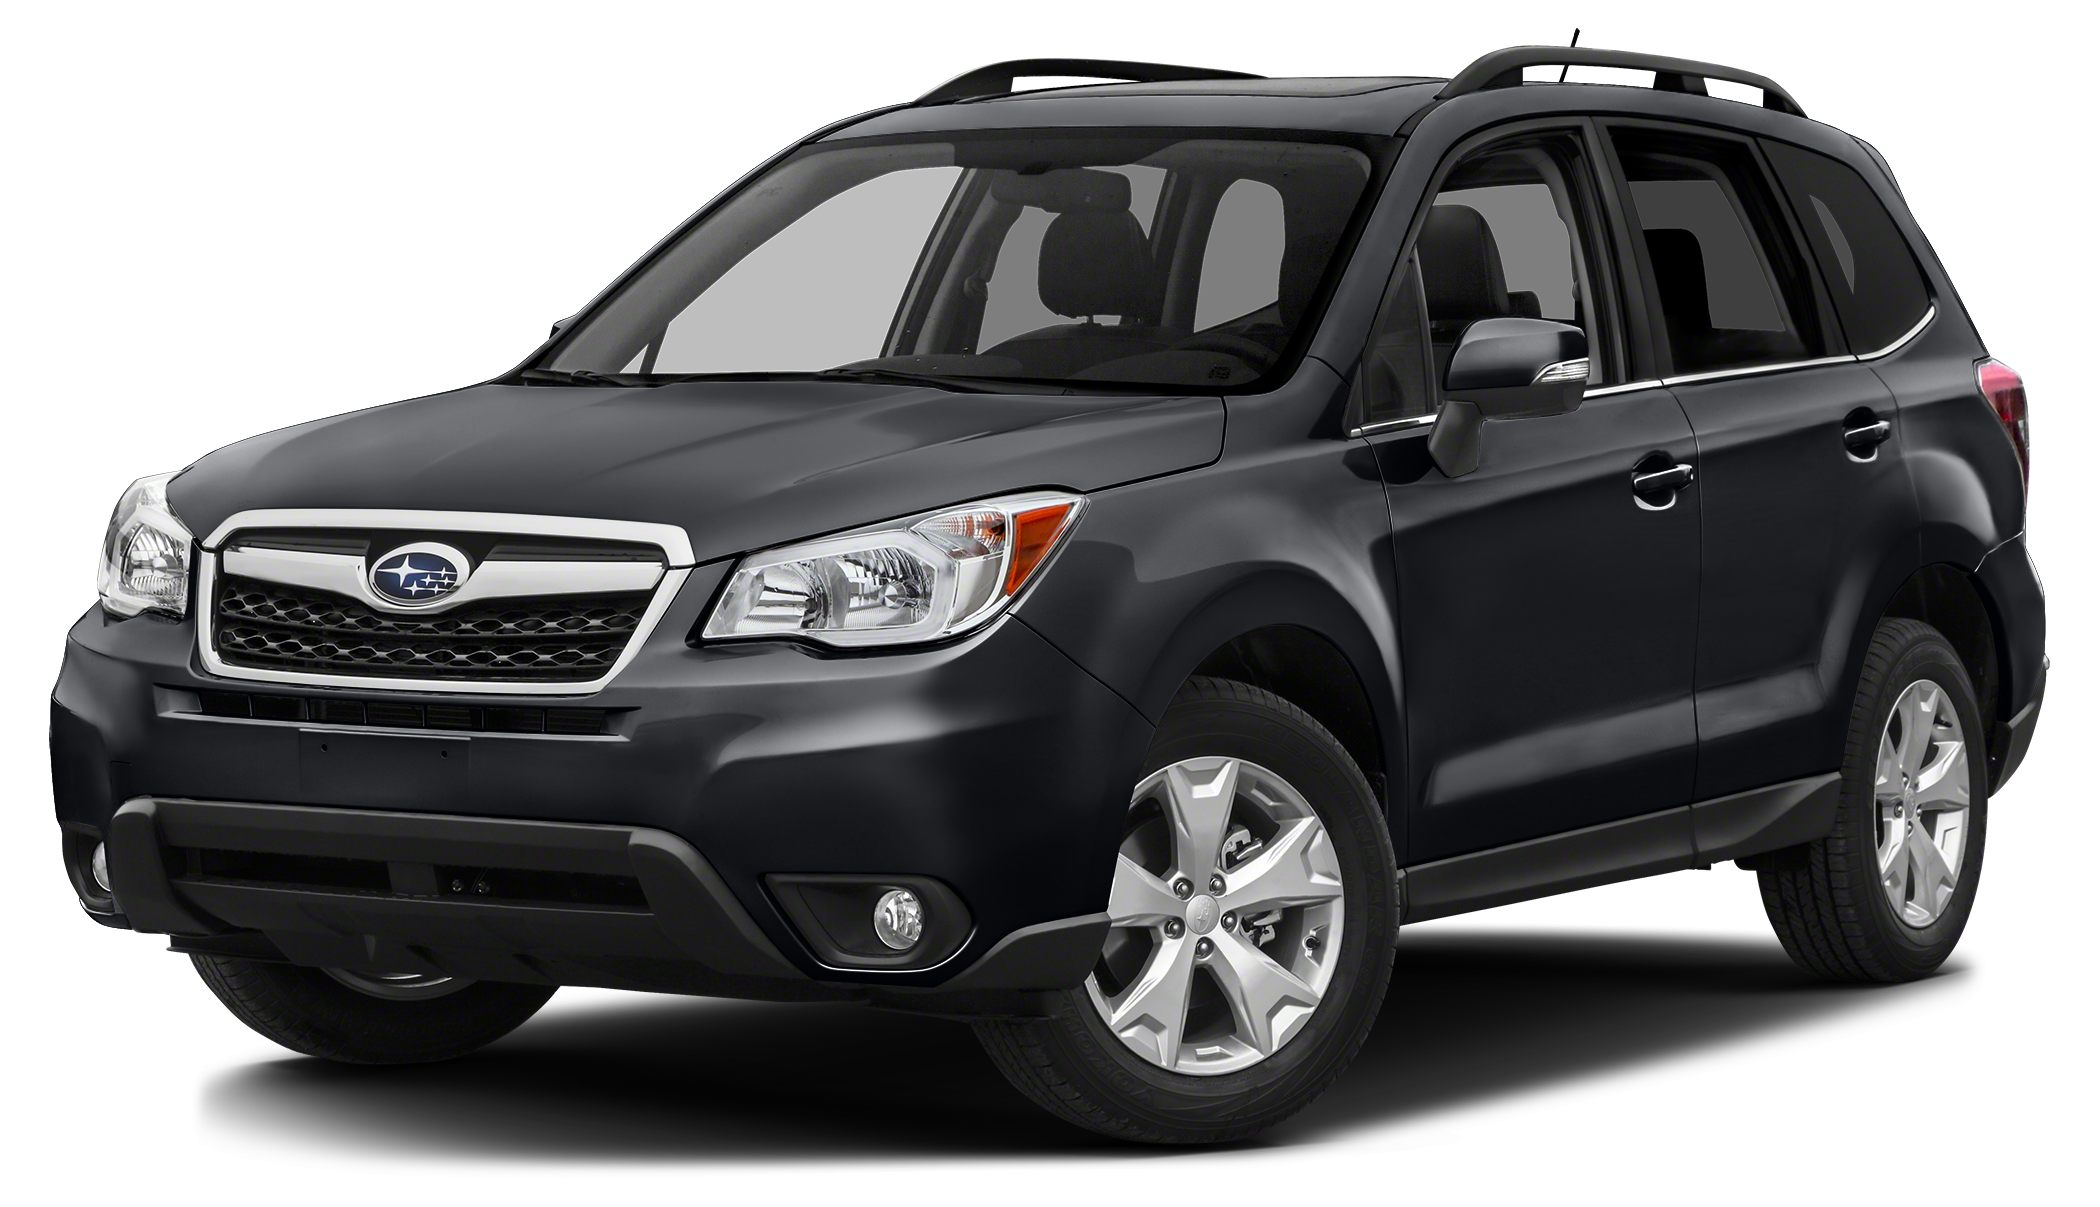 2014 Subaru Forester 25i Limited Snatch a bargain on this 2014 Subaru Forester 25i Limited while